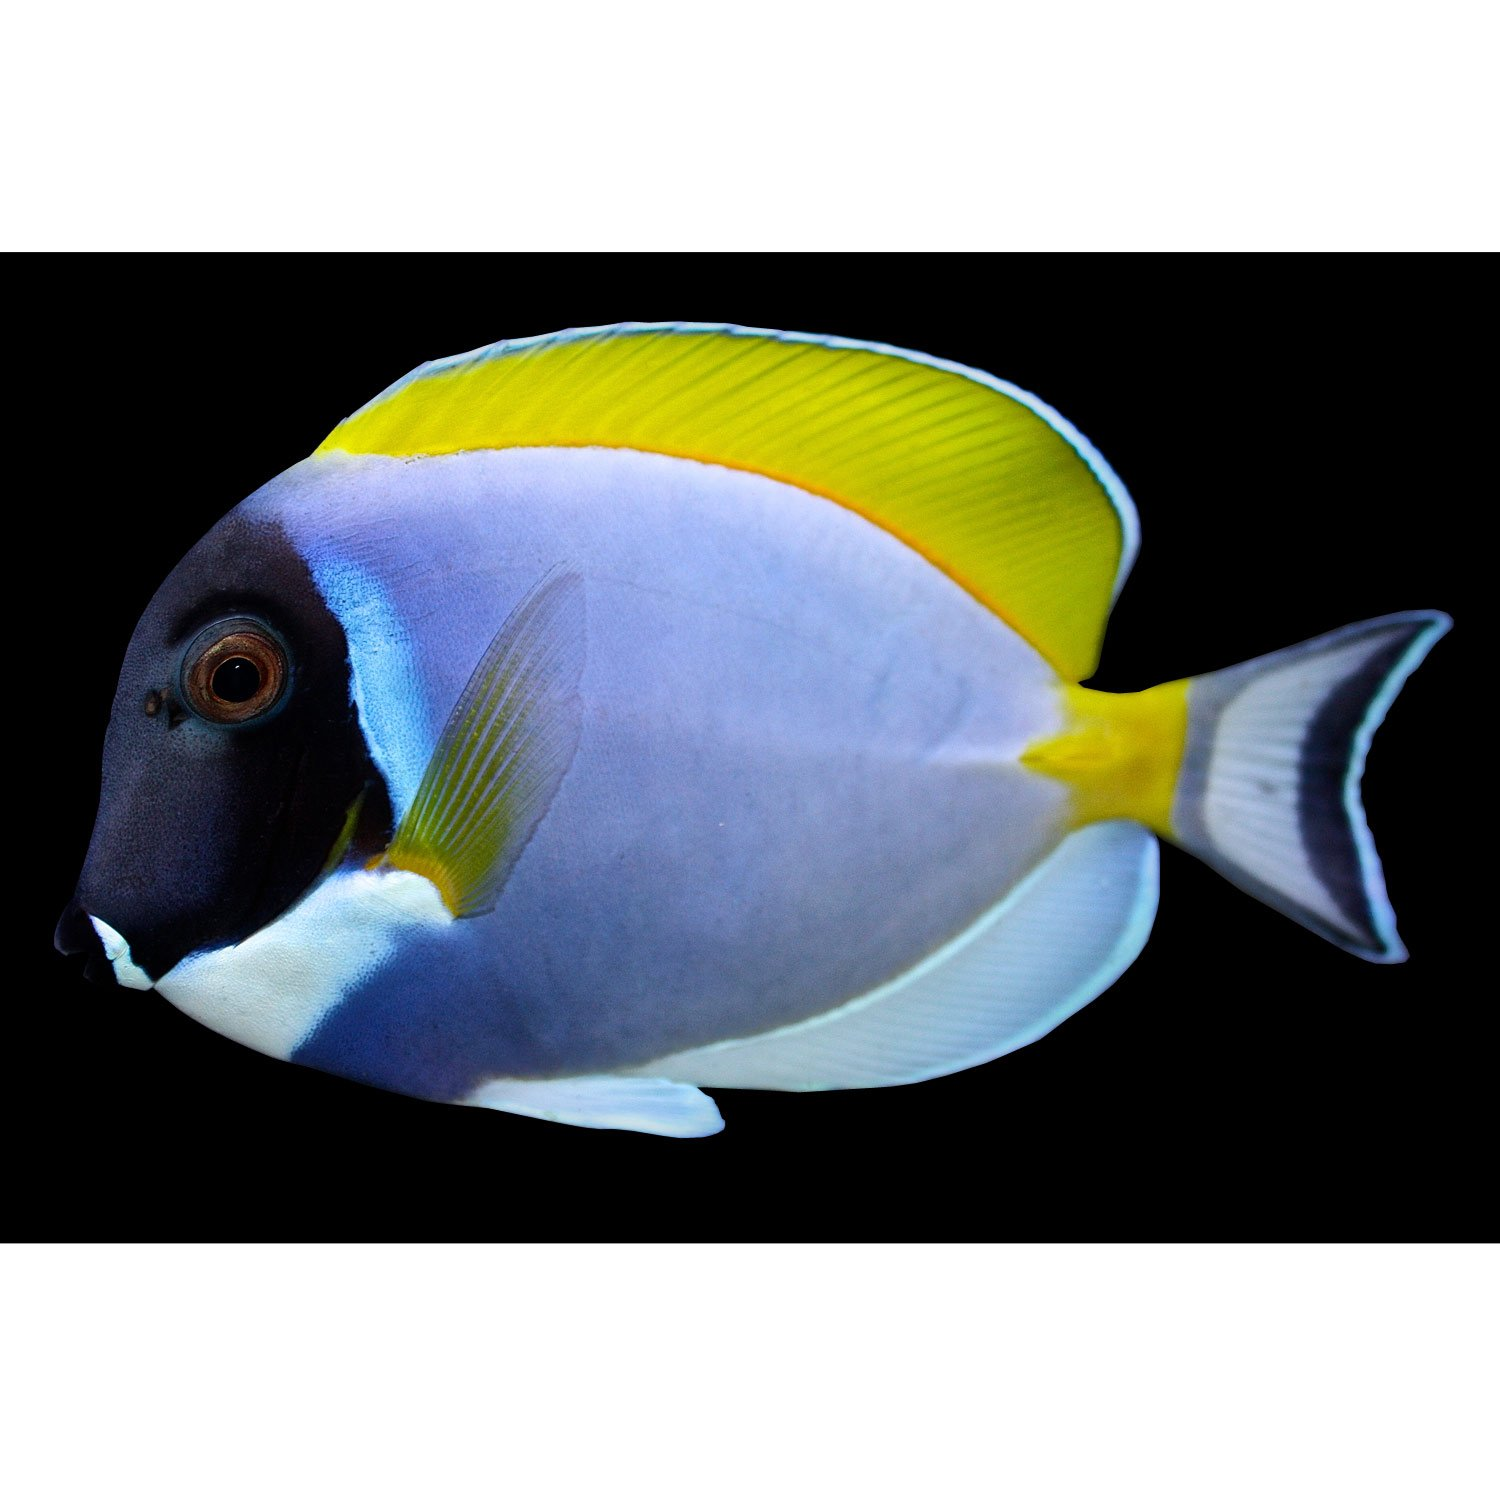 Powder blue tang small petco for Petco fish prices